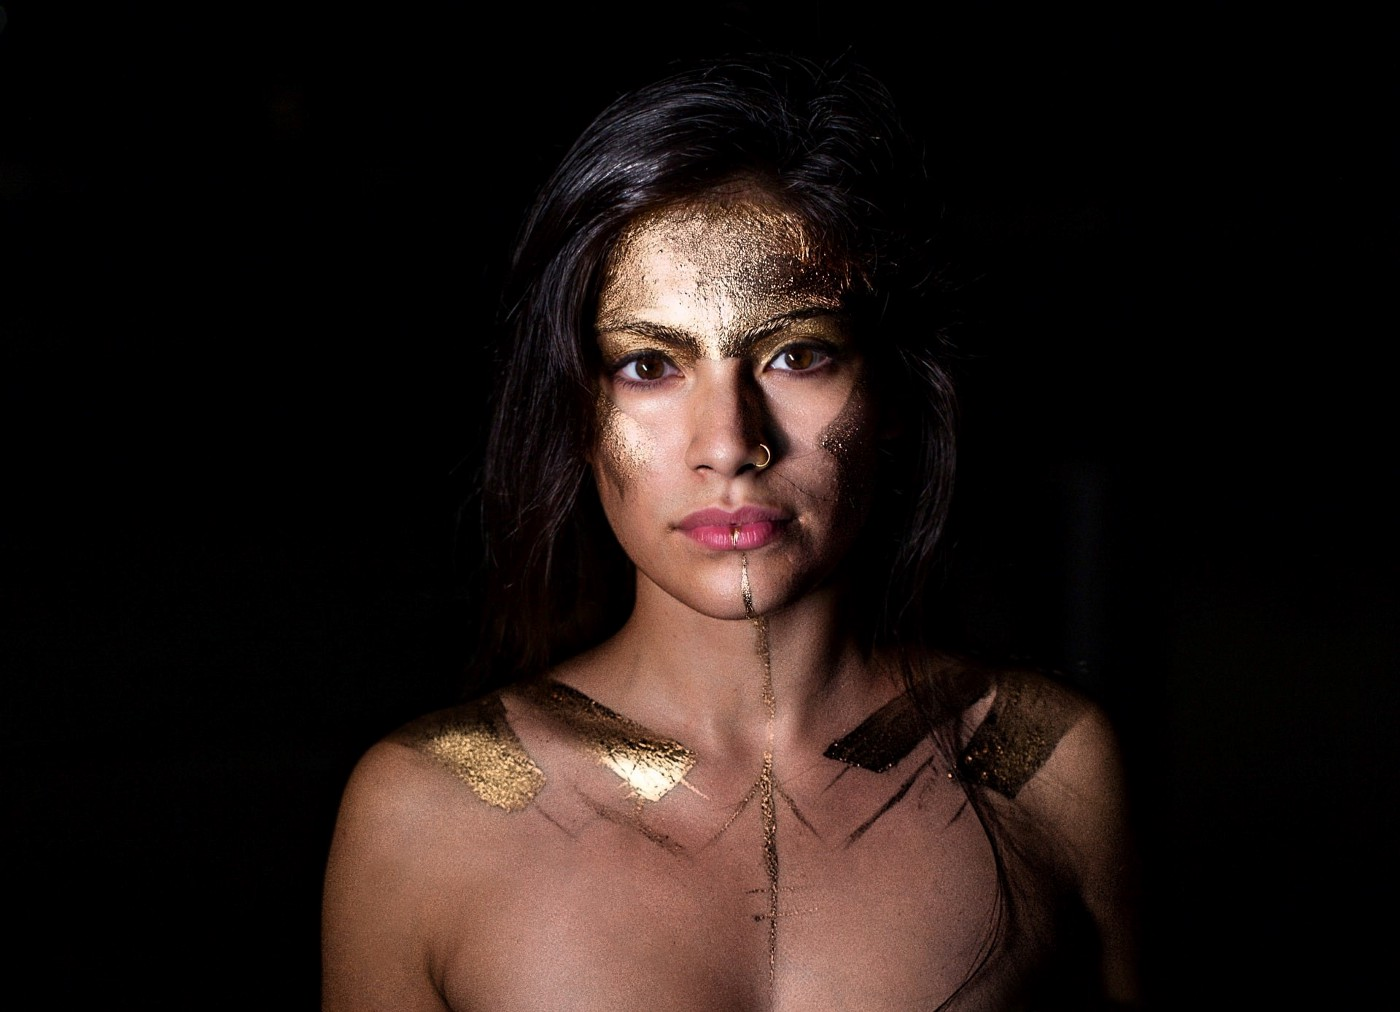 The head and shoulders of a young woman wearing nothing but gold face and body paint.